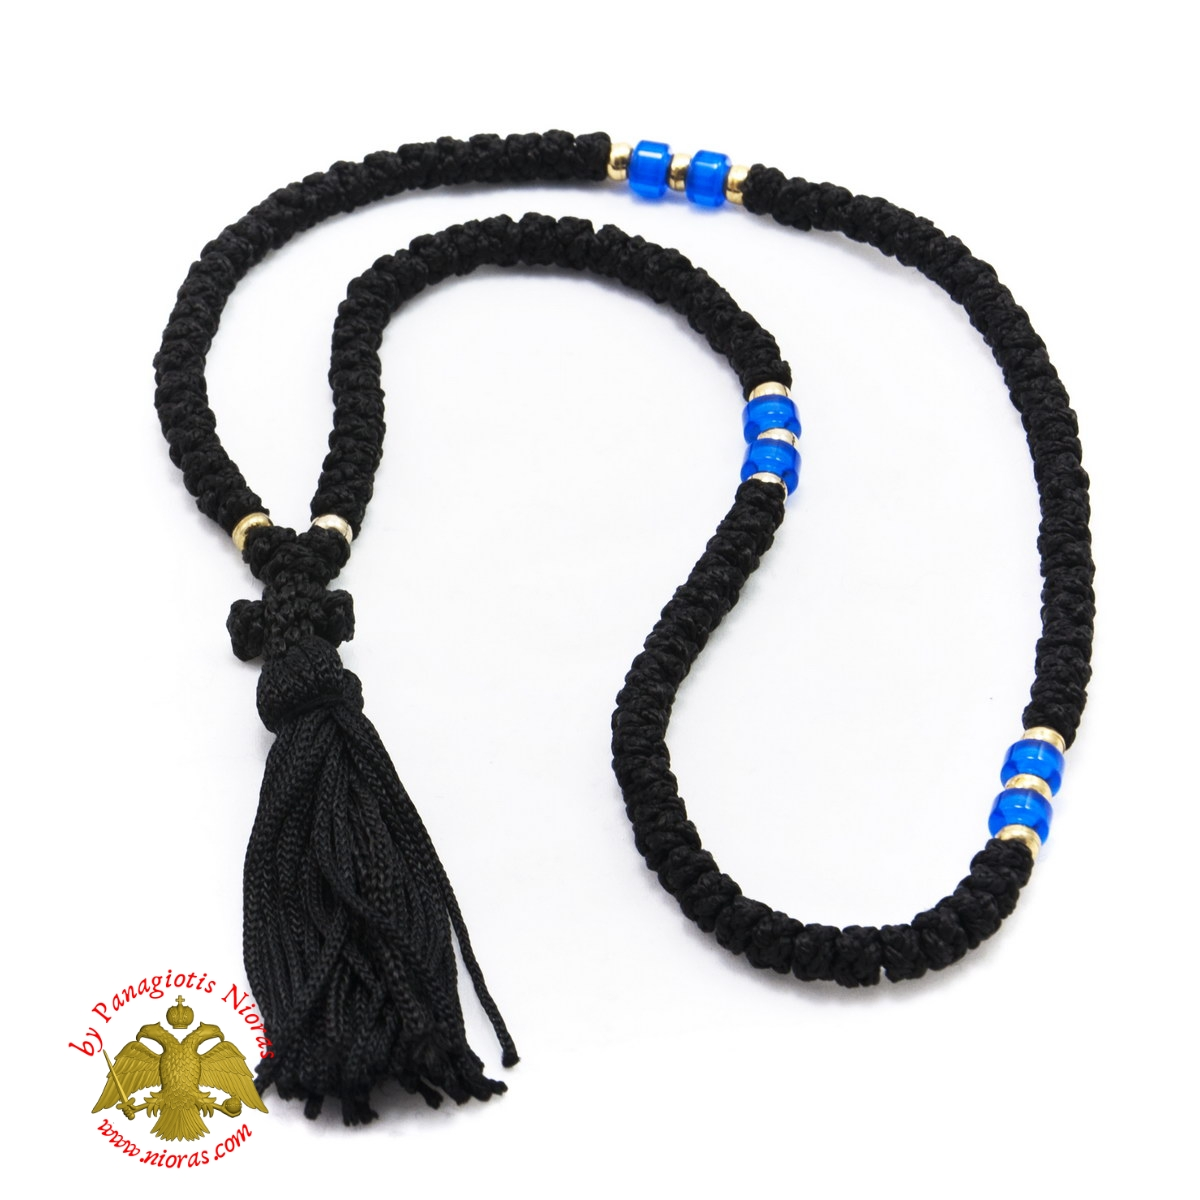 Orthodox Christian Black Prayer Rope 100 knots with Blue Beads